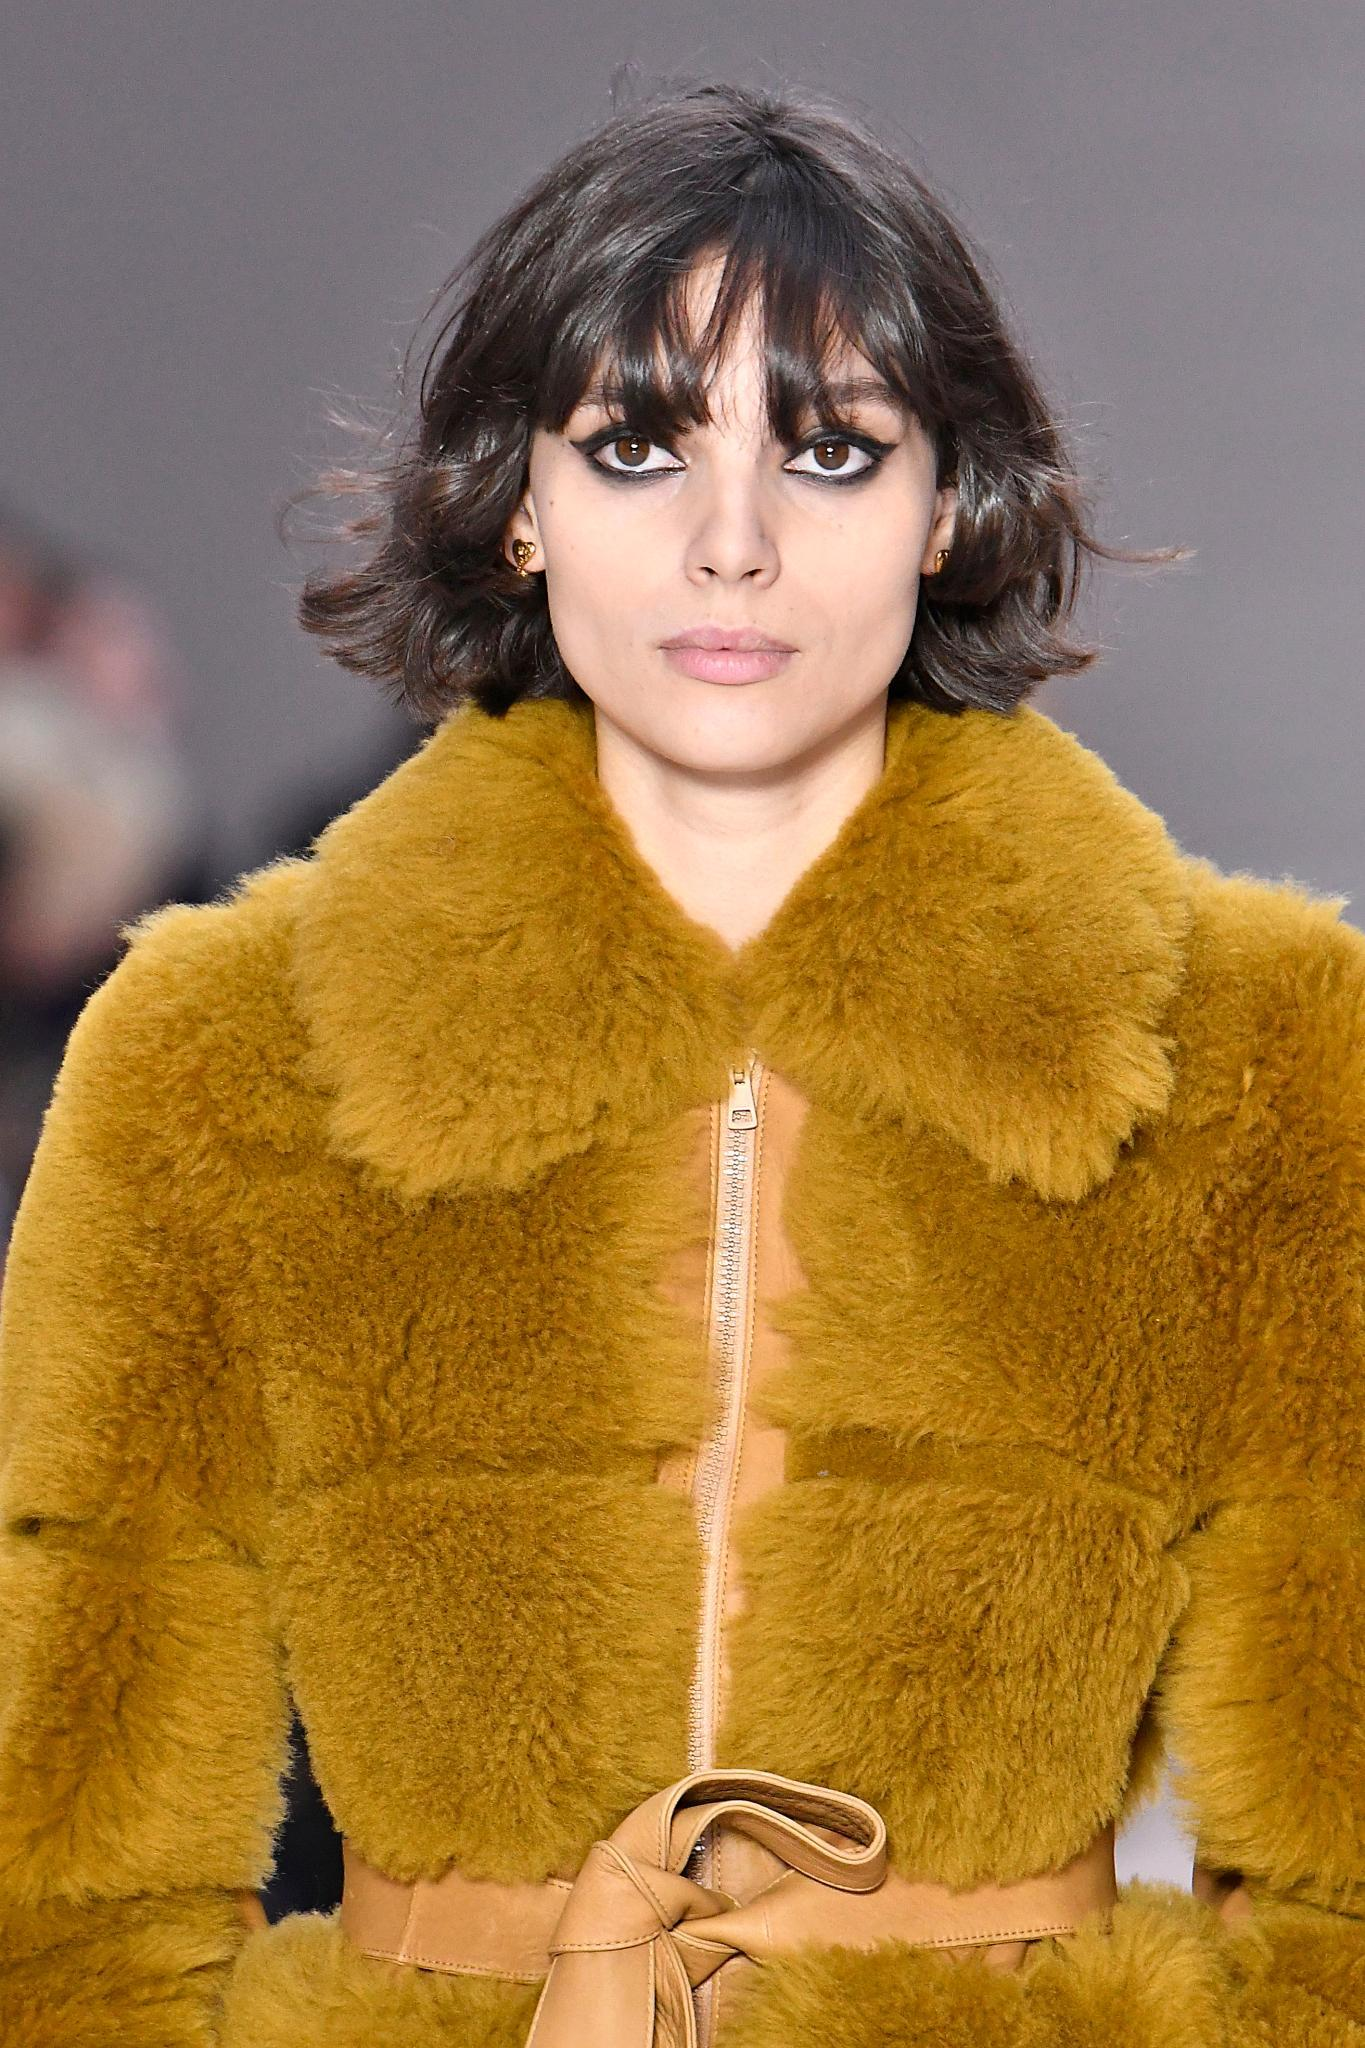 Tousled Short Hair Get The Runway Look On Any Hair Type